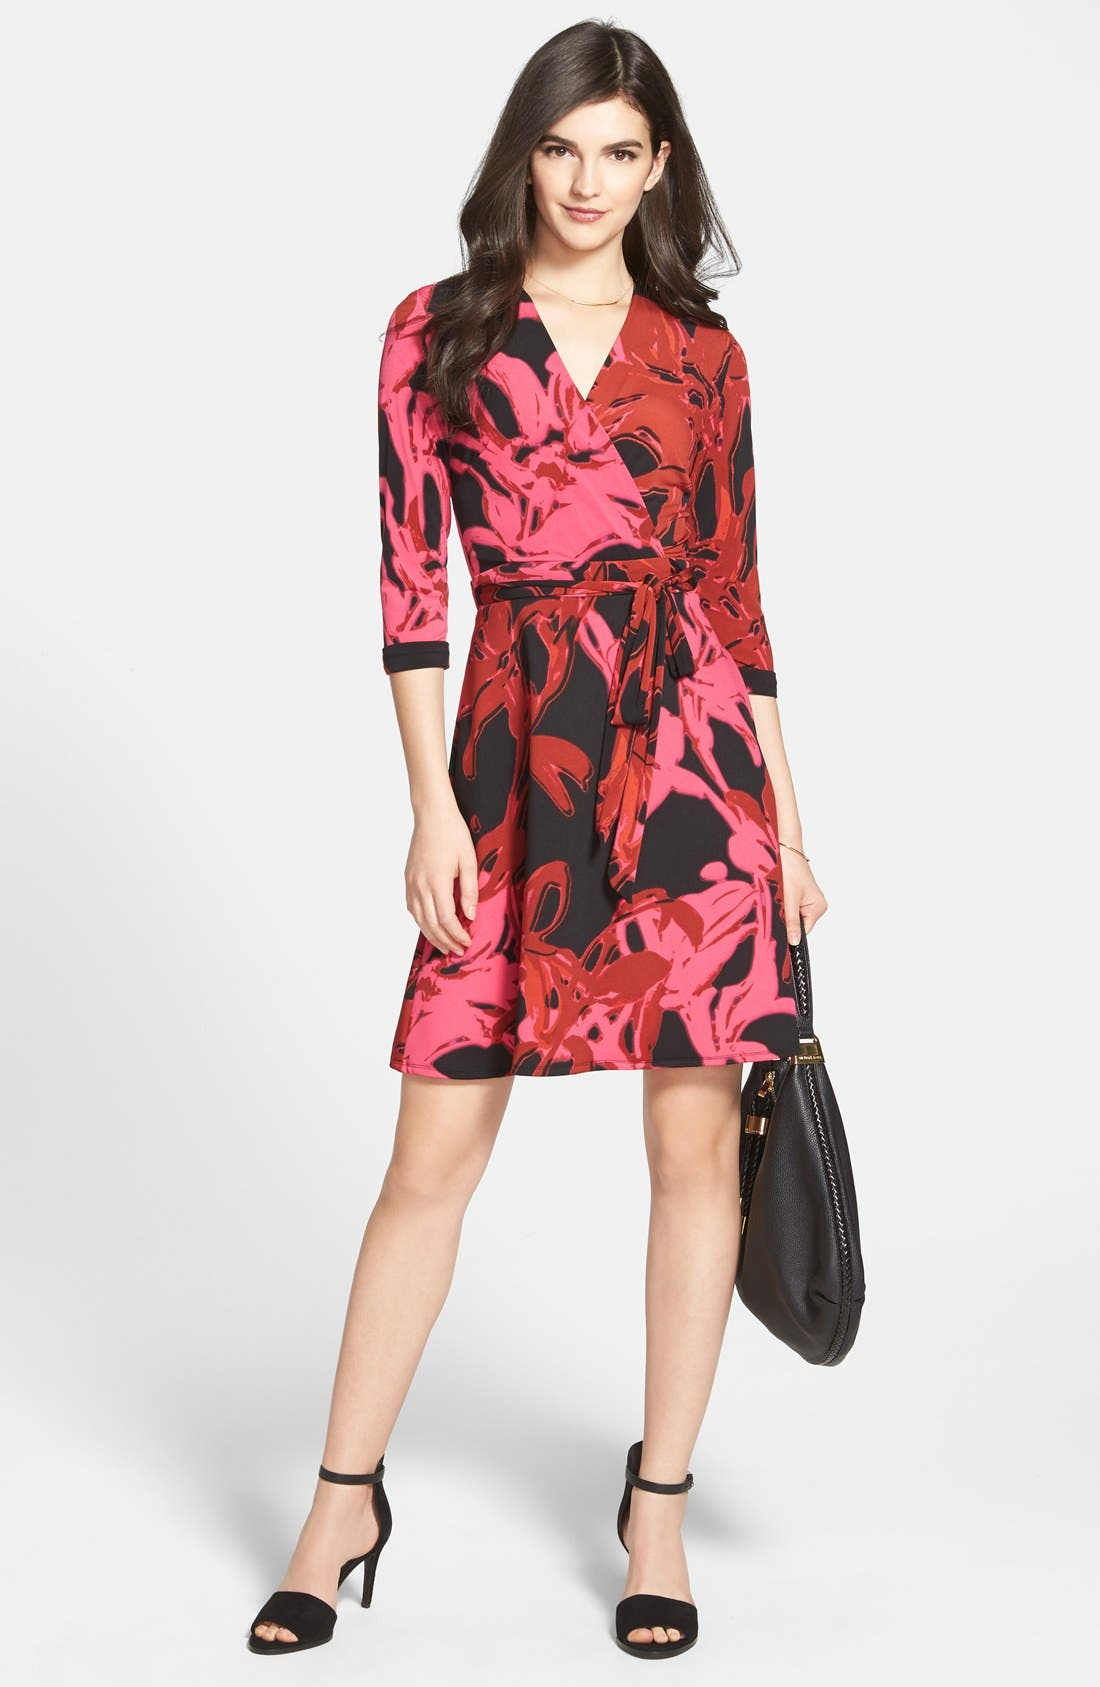 Alternate Image 1 Selected - Taylor Dresses Print Jersey & Scuba Faux Wrap Dress (Regular & Petite)